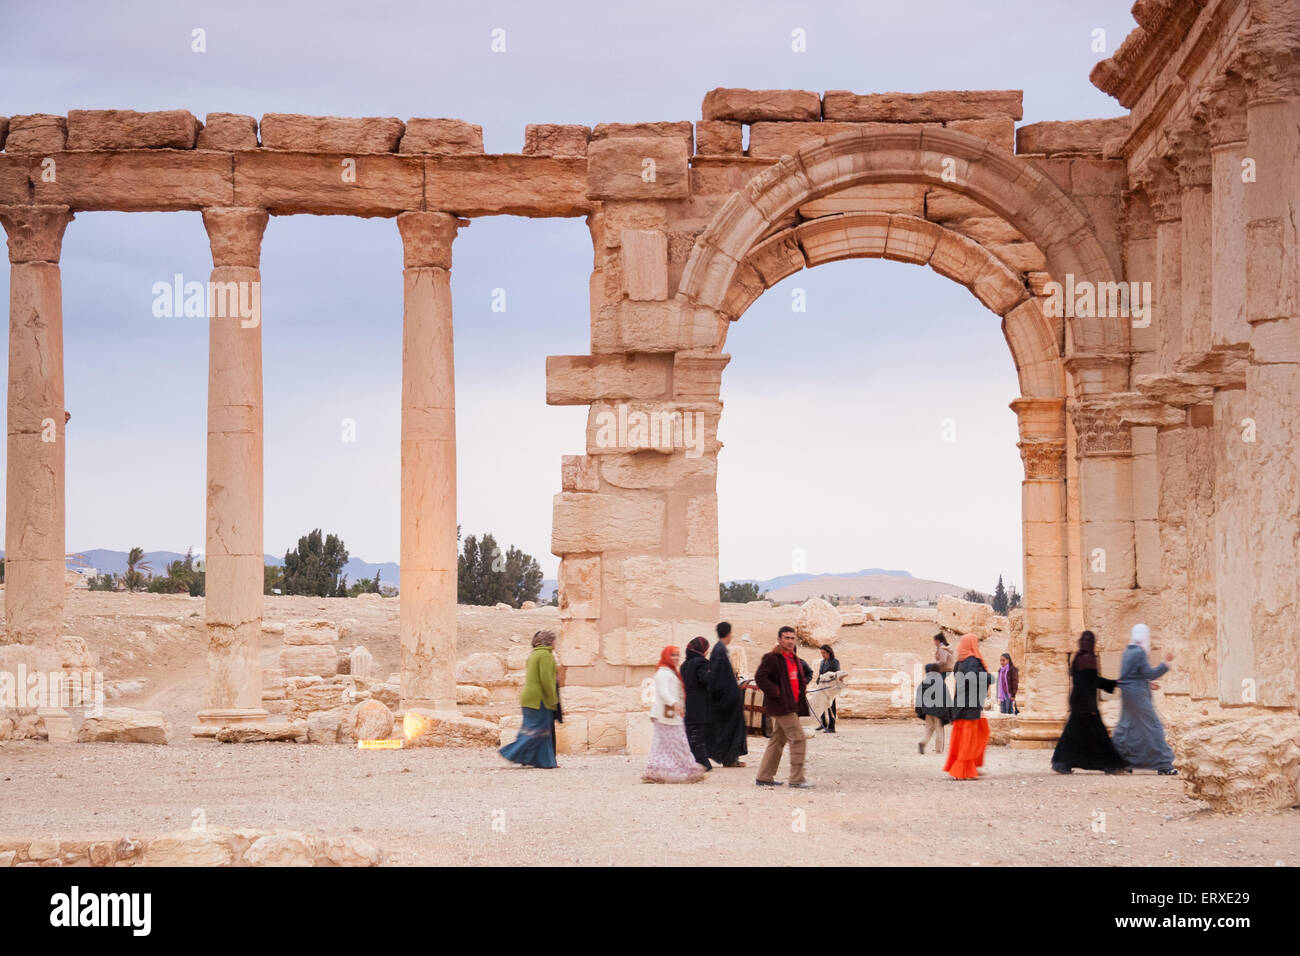 Visitors walking in the Ruins of the ancient city of Palmyra, Syrian Desert - Stock Image